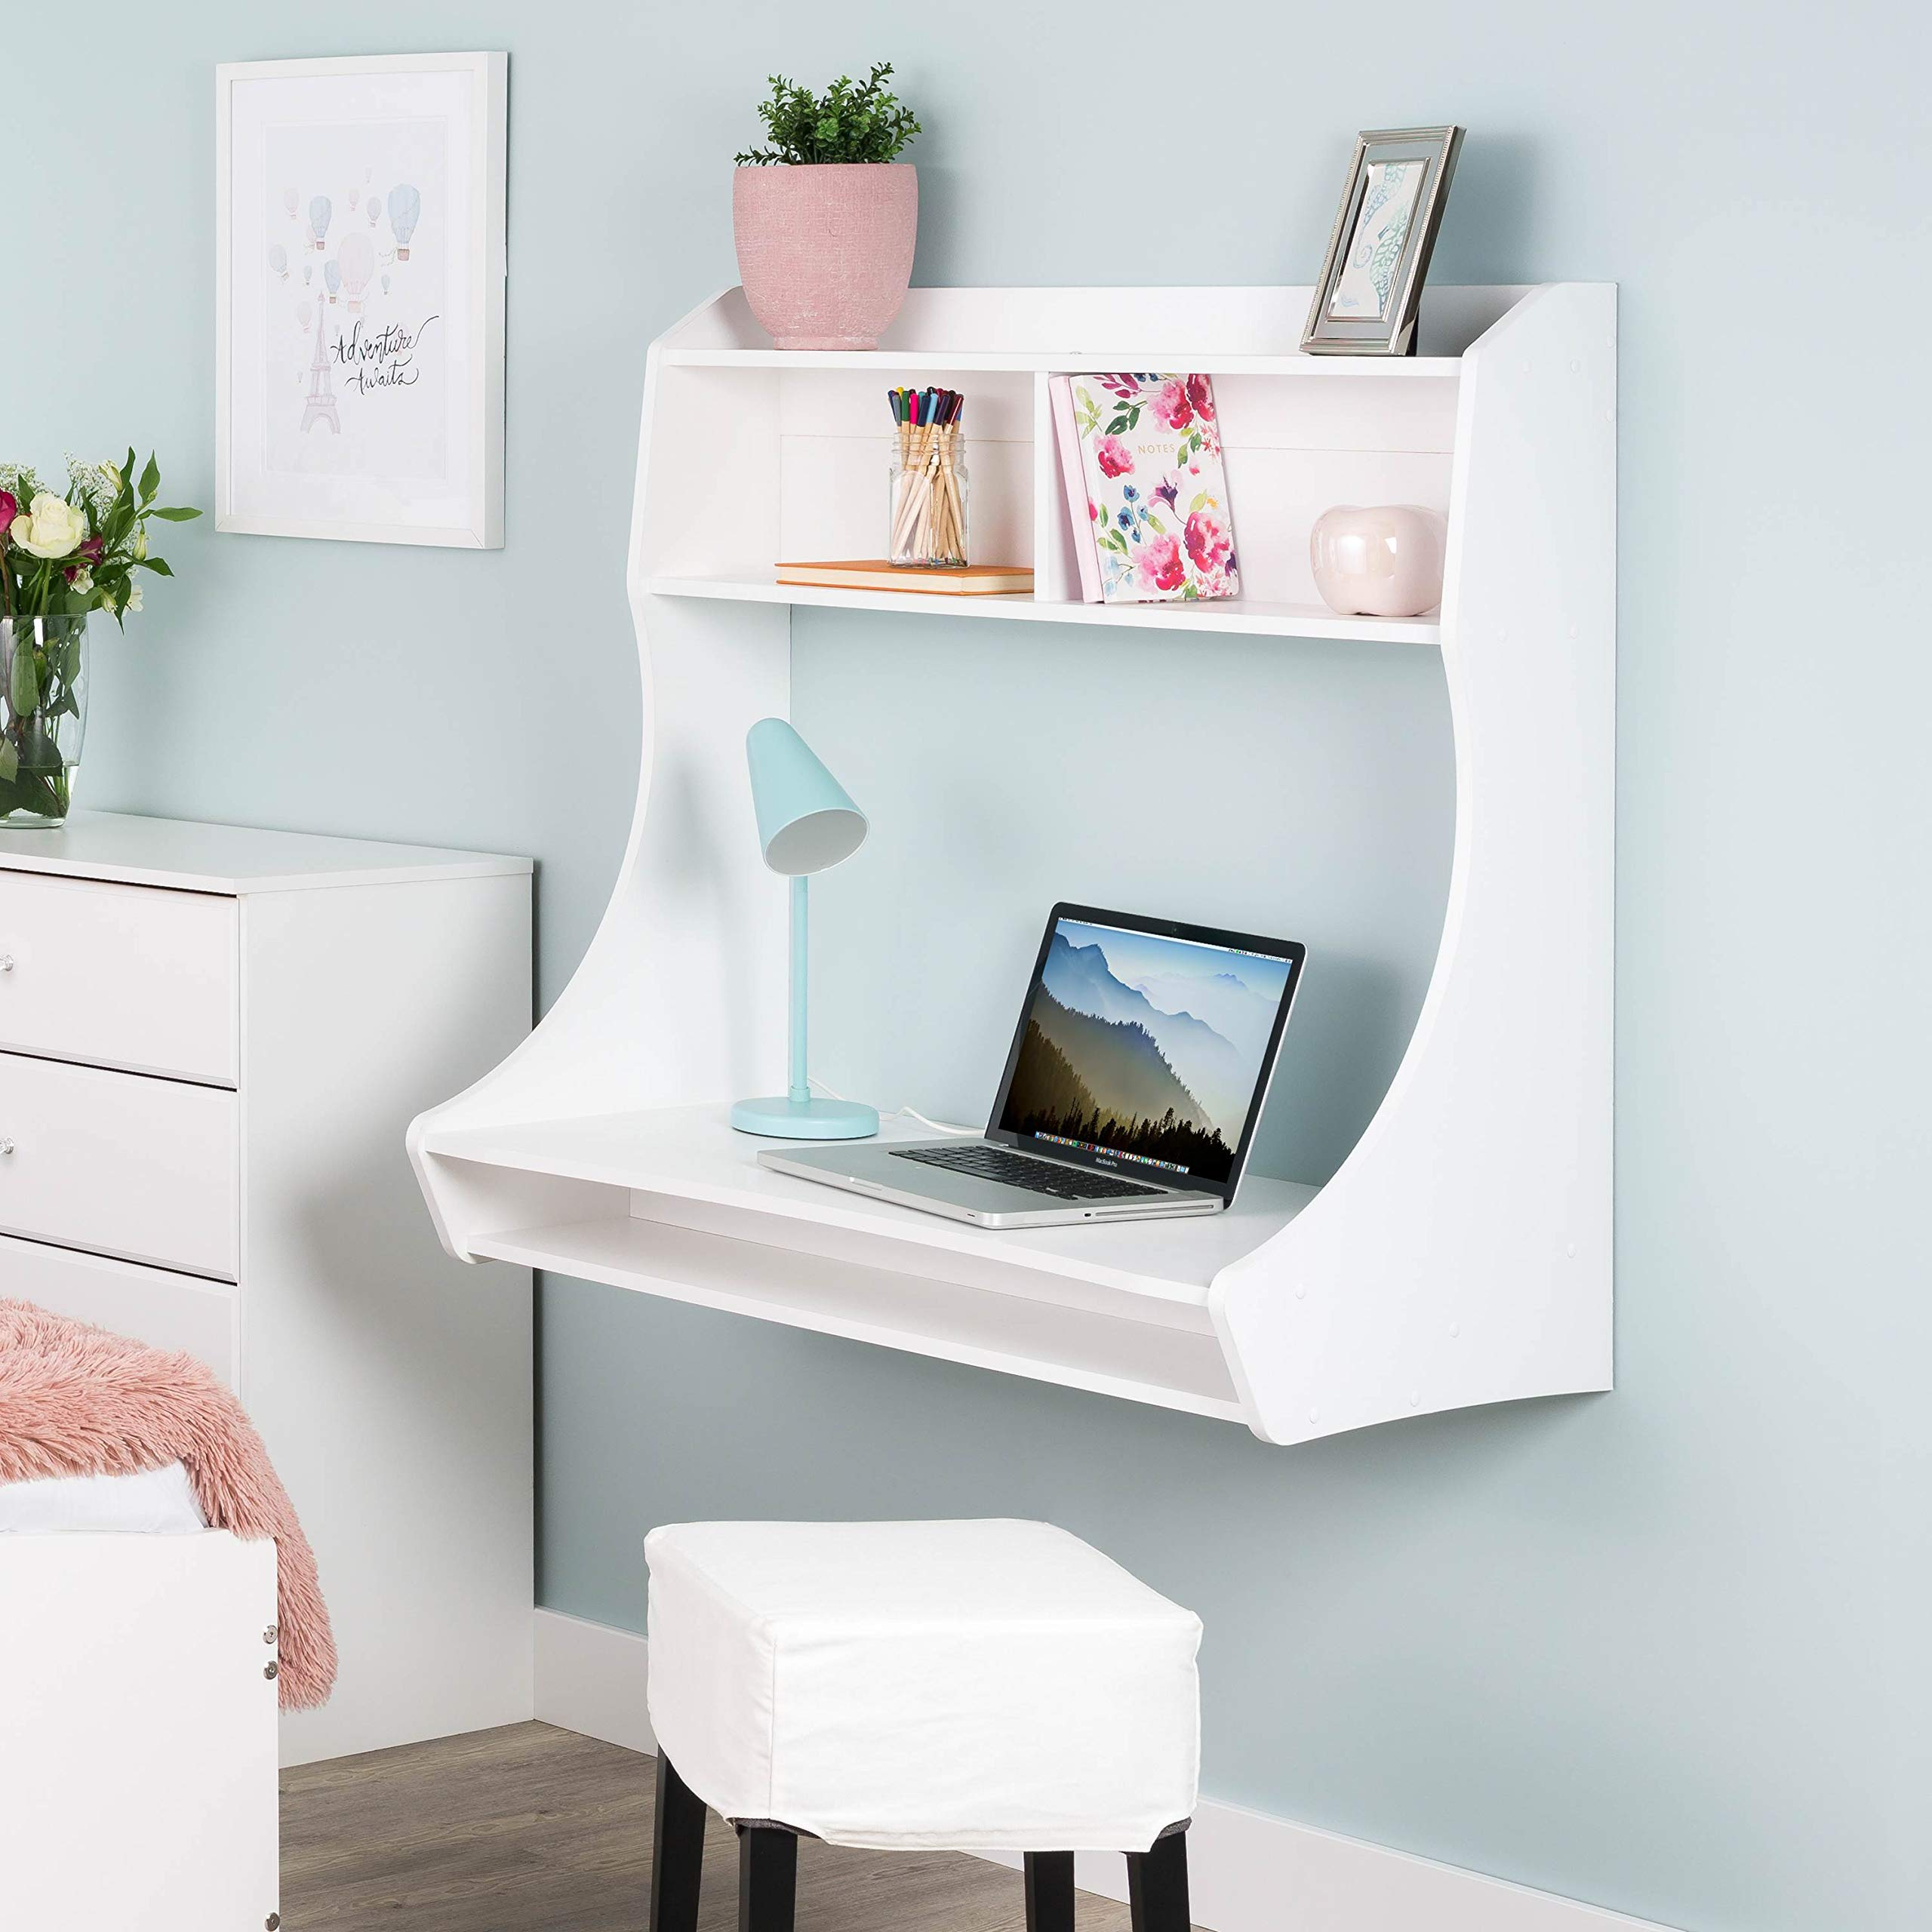 Prepac WEHW-0902-1 Compact Hanging Desk, White by Prepac